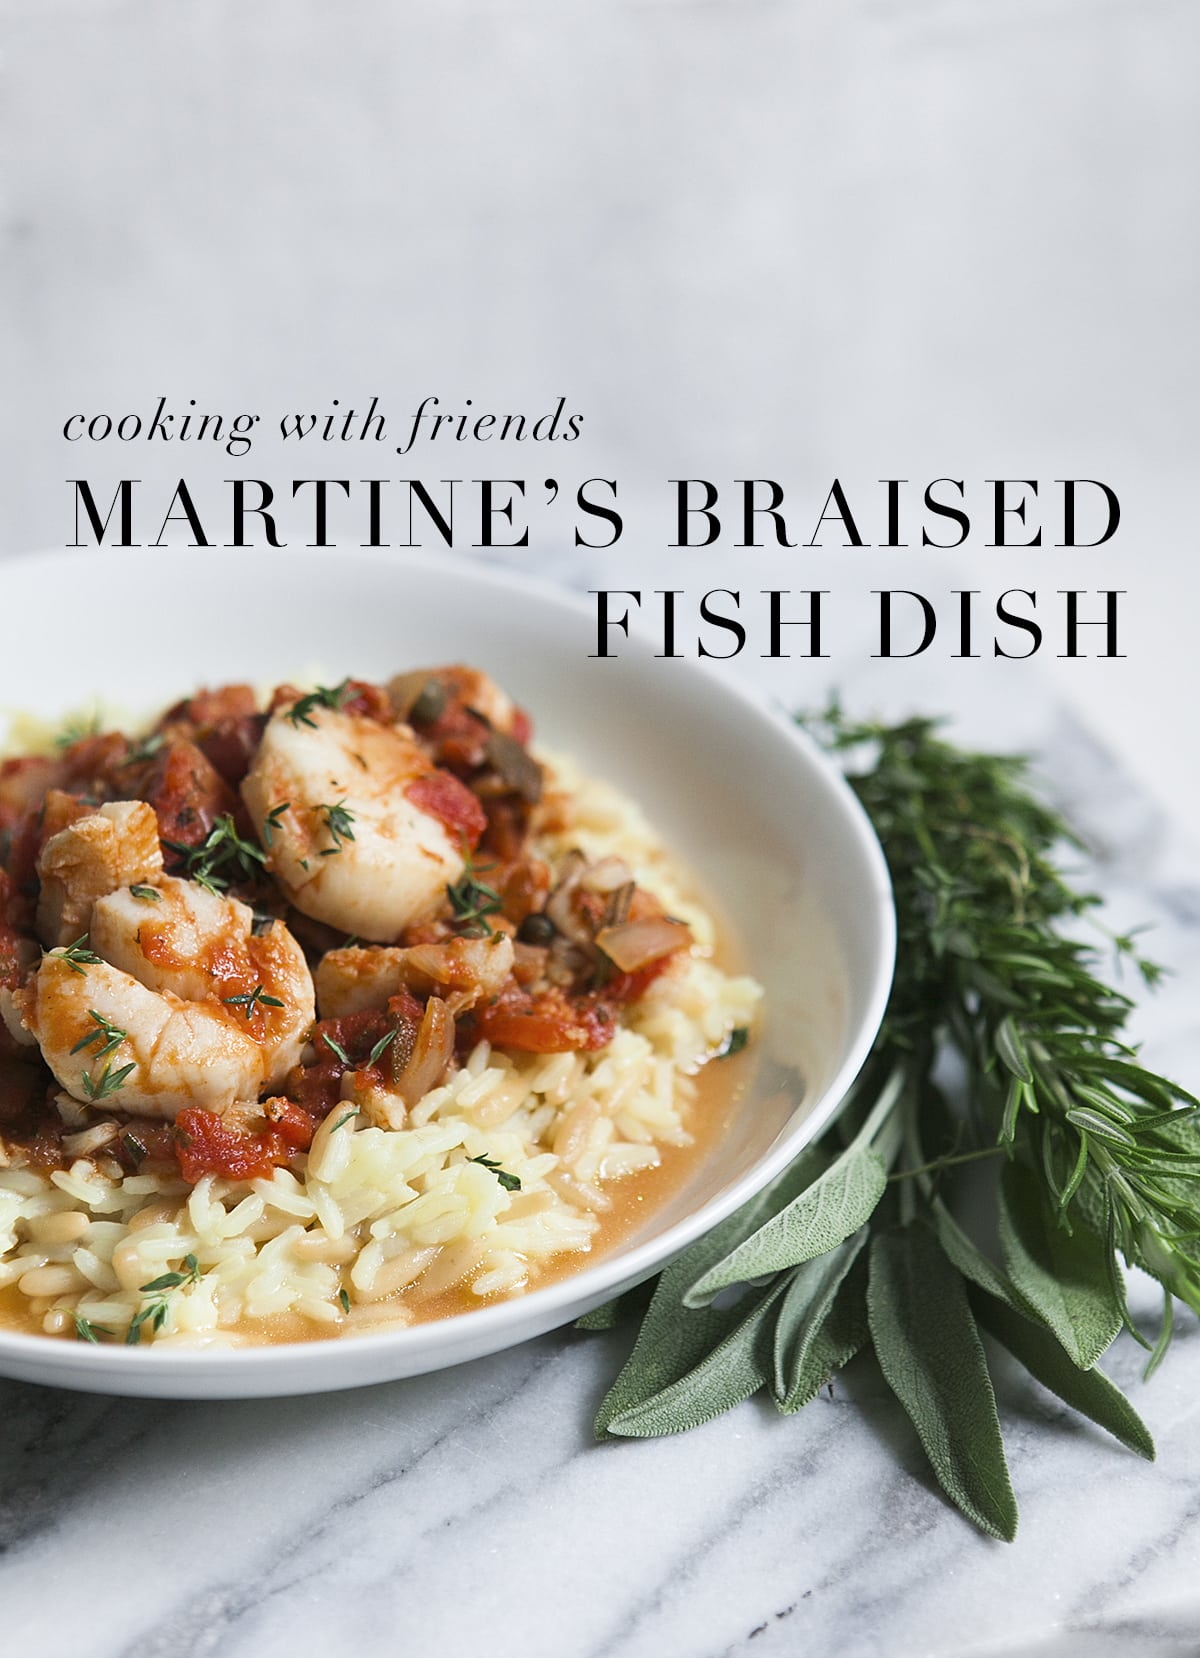 Martines Braised Fish with Rice Pilaf | Seasonal Cooking | Cod Recipes | Jessica Brigham Blog | Magazine Ready for Life for Less